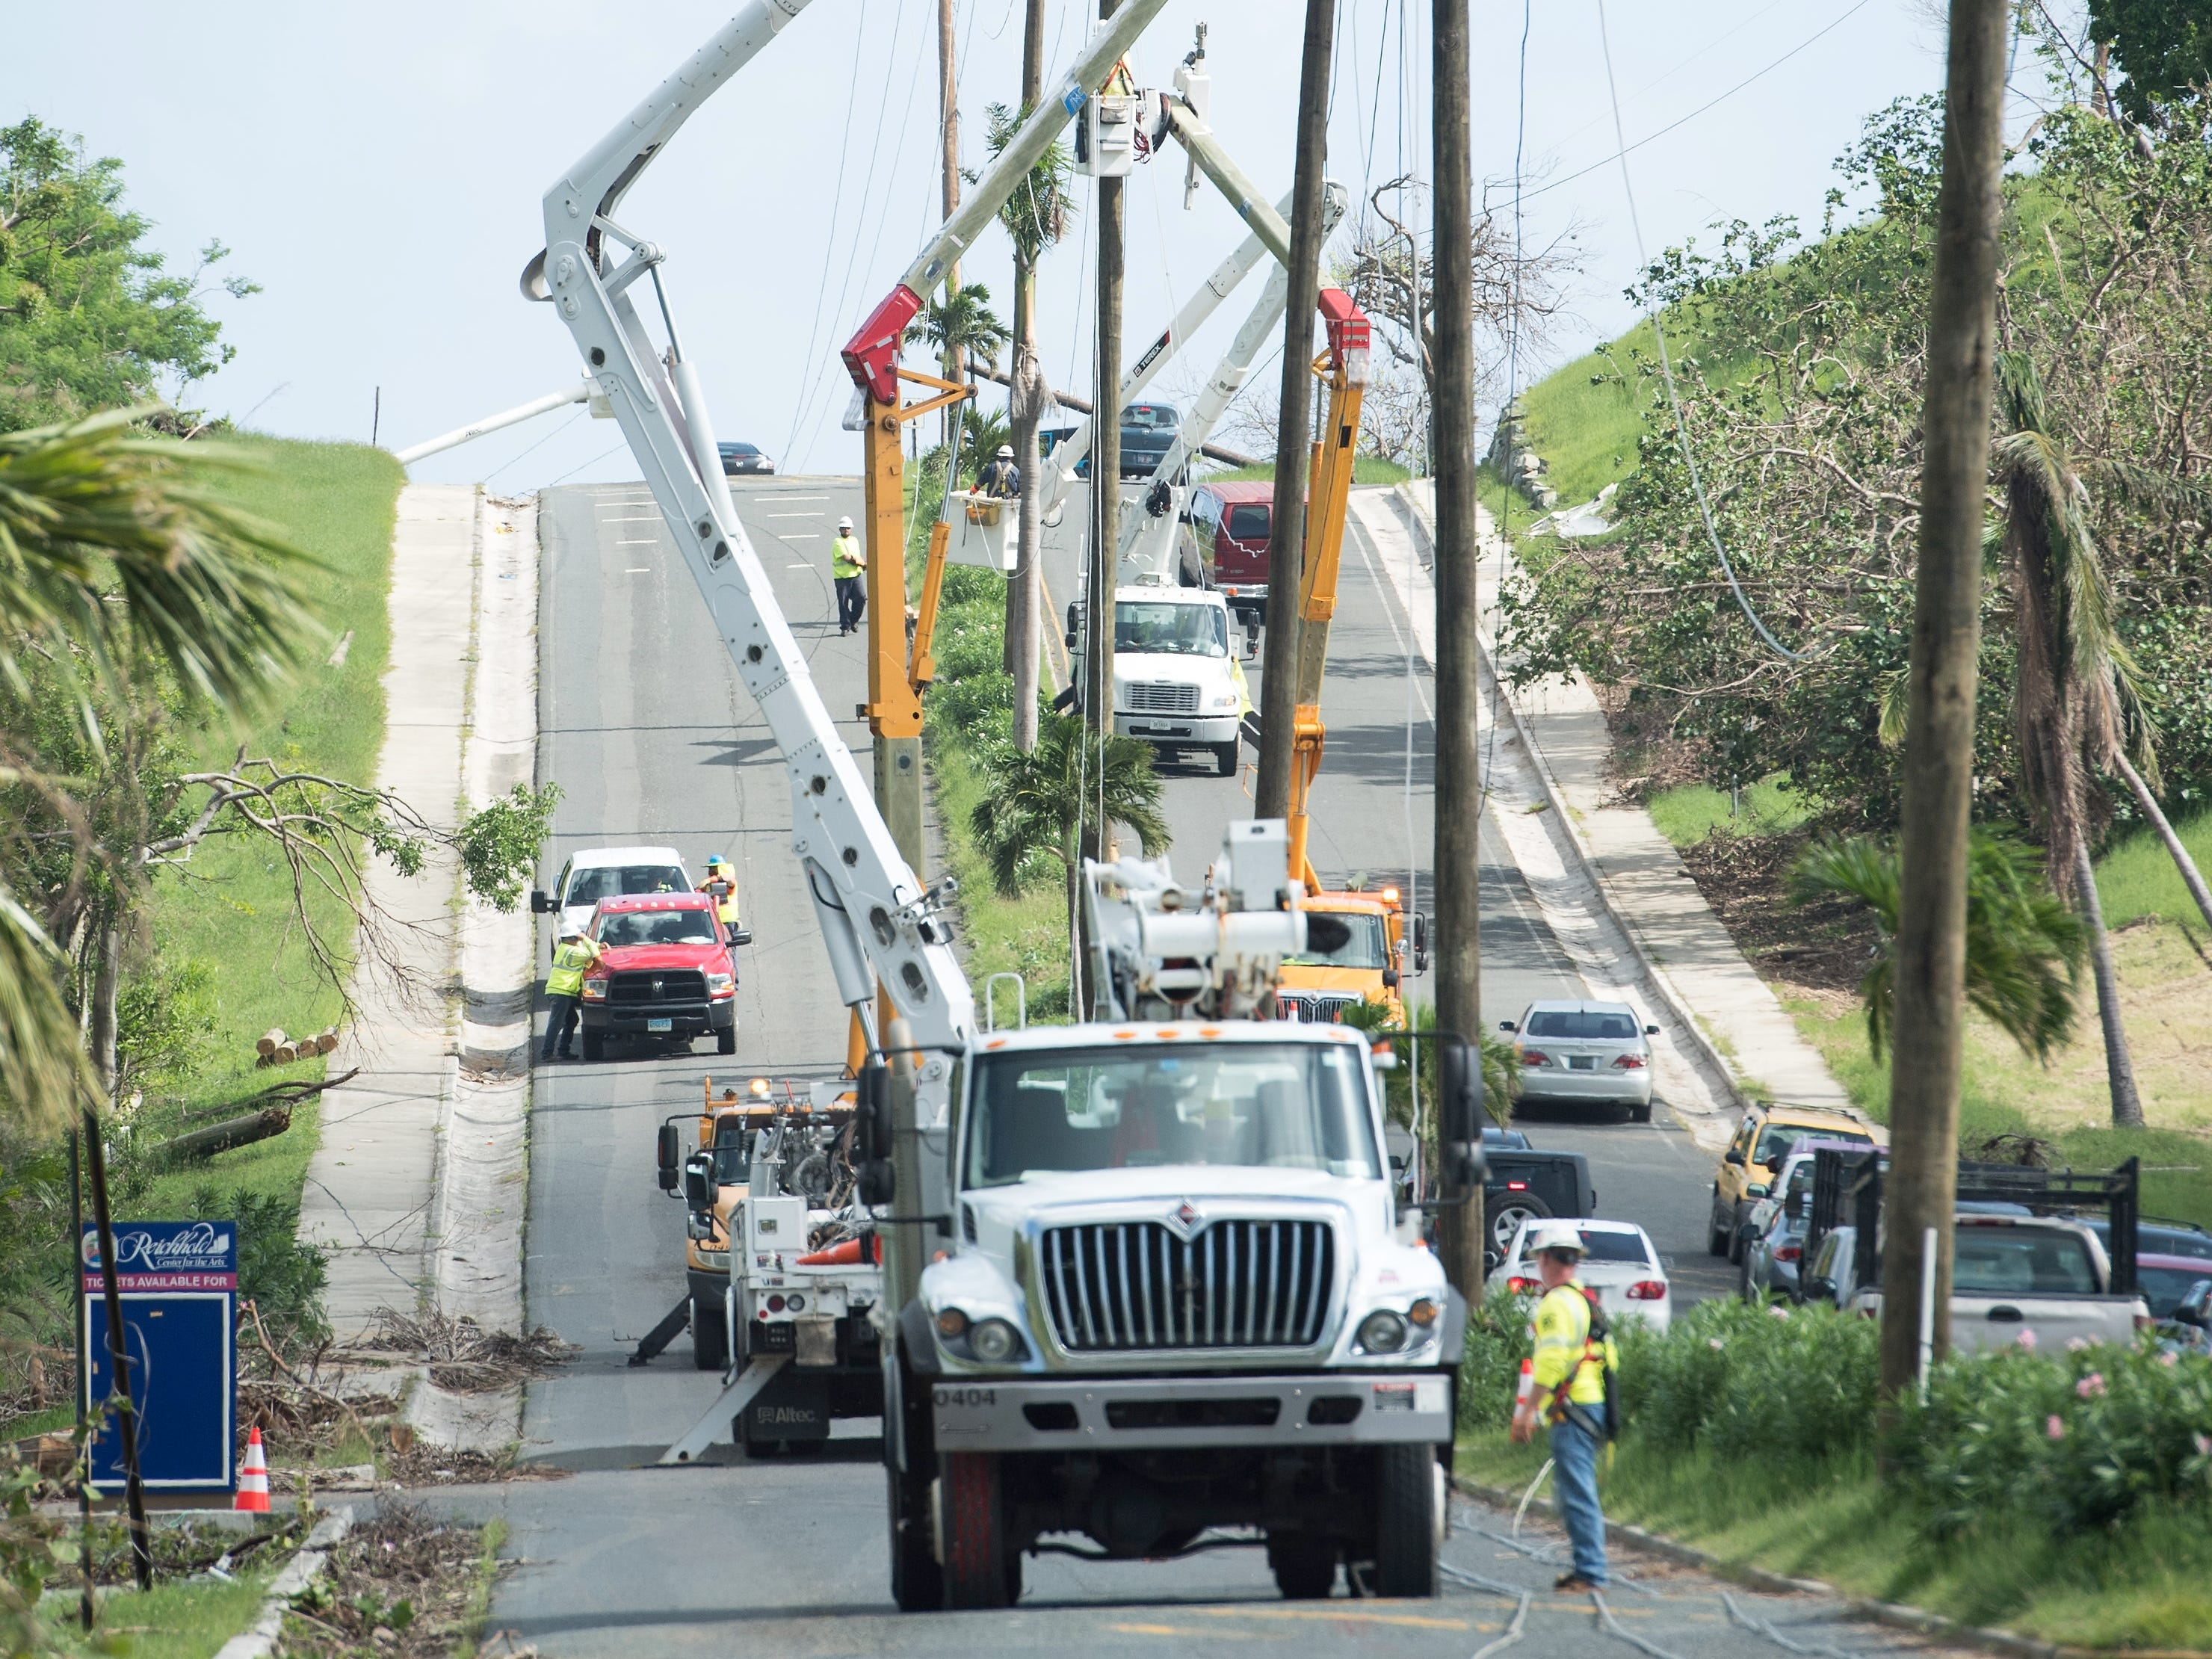 Crews work to restore power near The University of the Virgin Islands in St. Thomas after Hurricane Irma, Oct. 23, 2017.